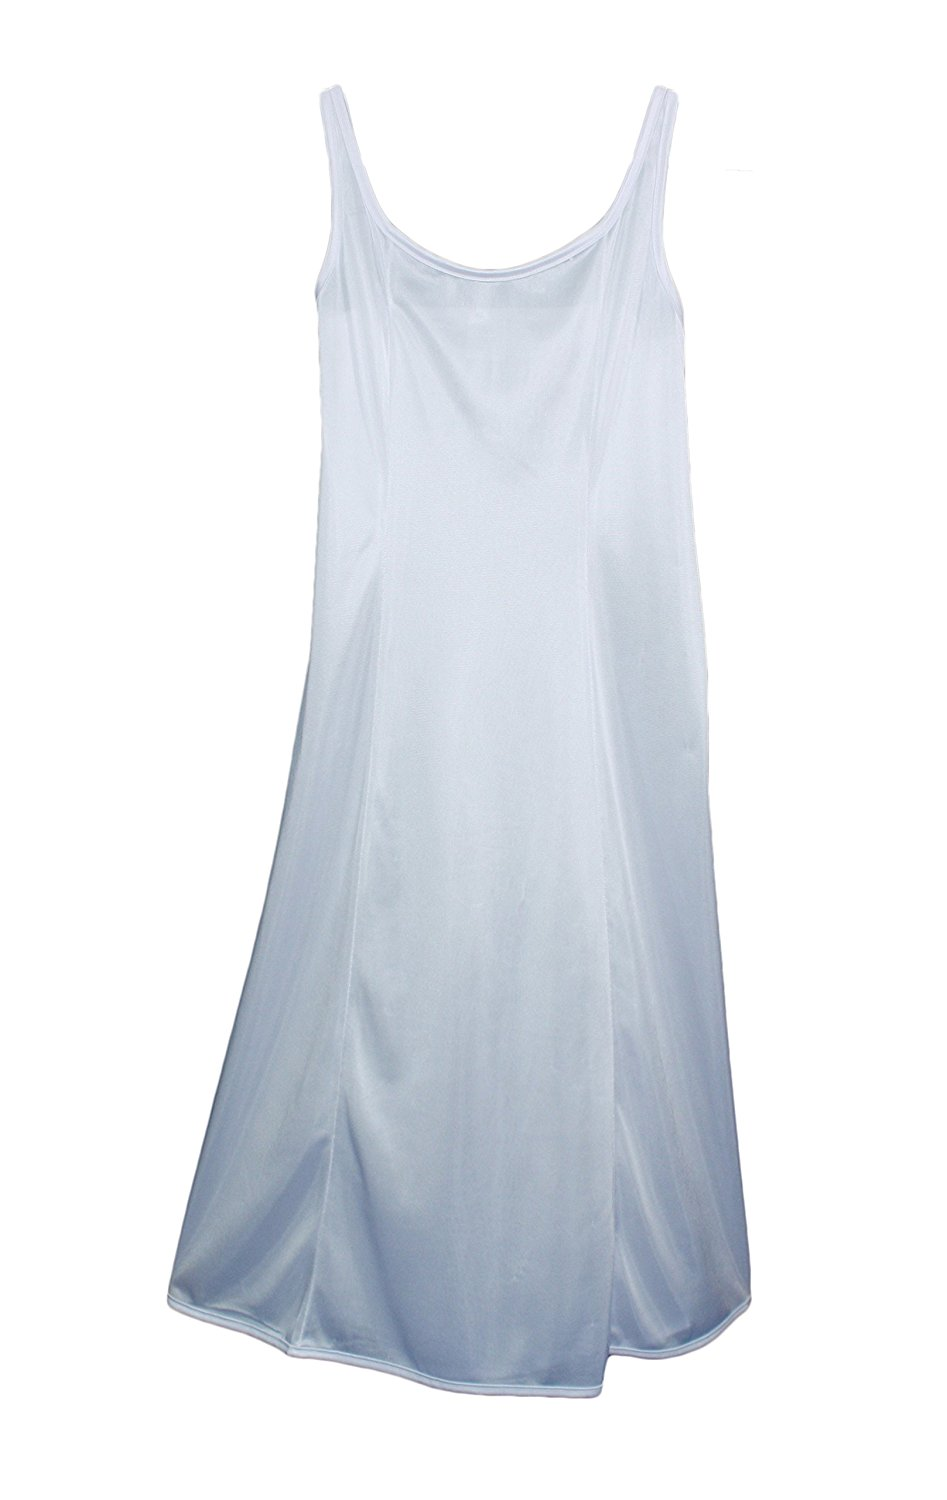 Little Things Mean A Lot Girls White Simple Princess Style Tea Length Nylon Slip with Adjustable Straps (Size 4-16)